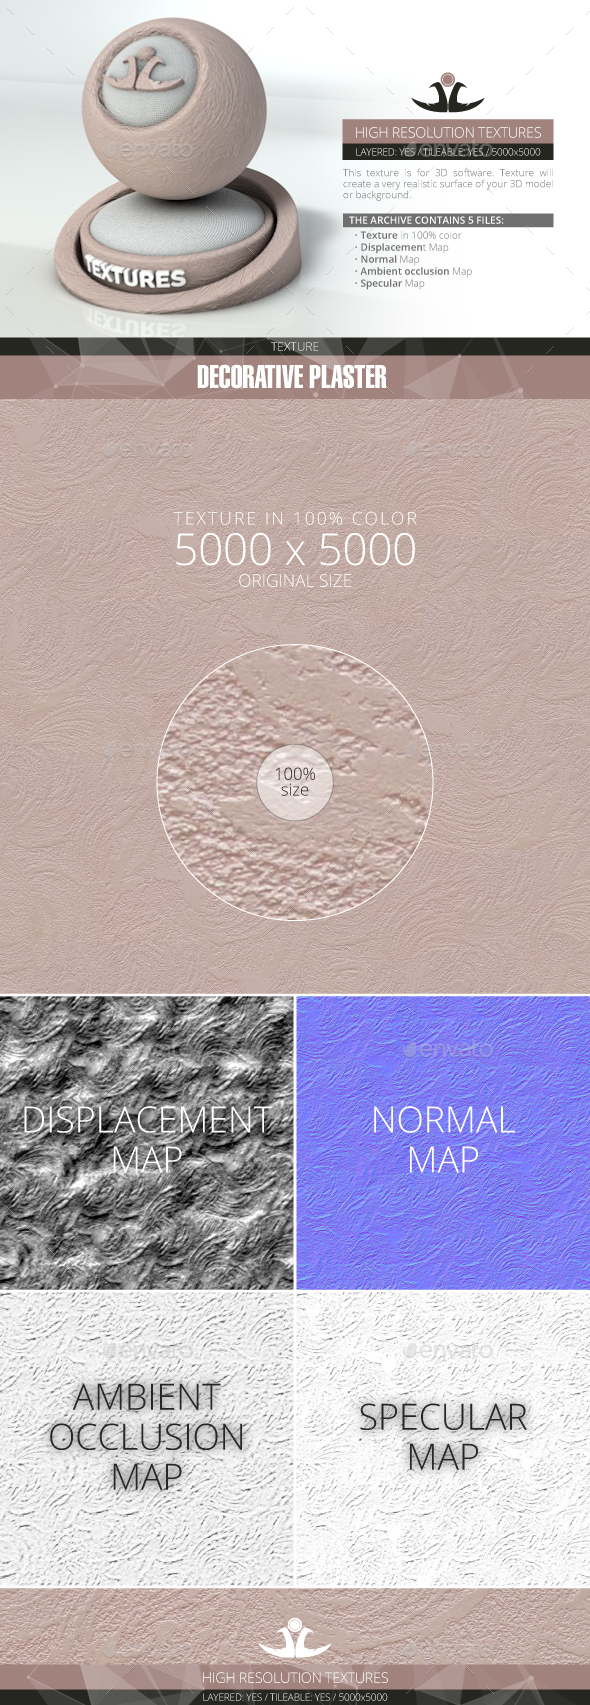 Decorative plaster 8 - 3DOcean Item for Sale